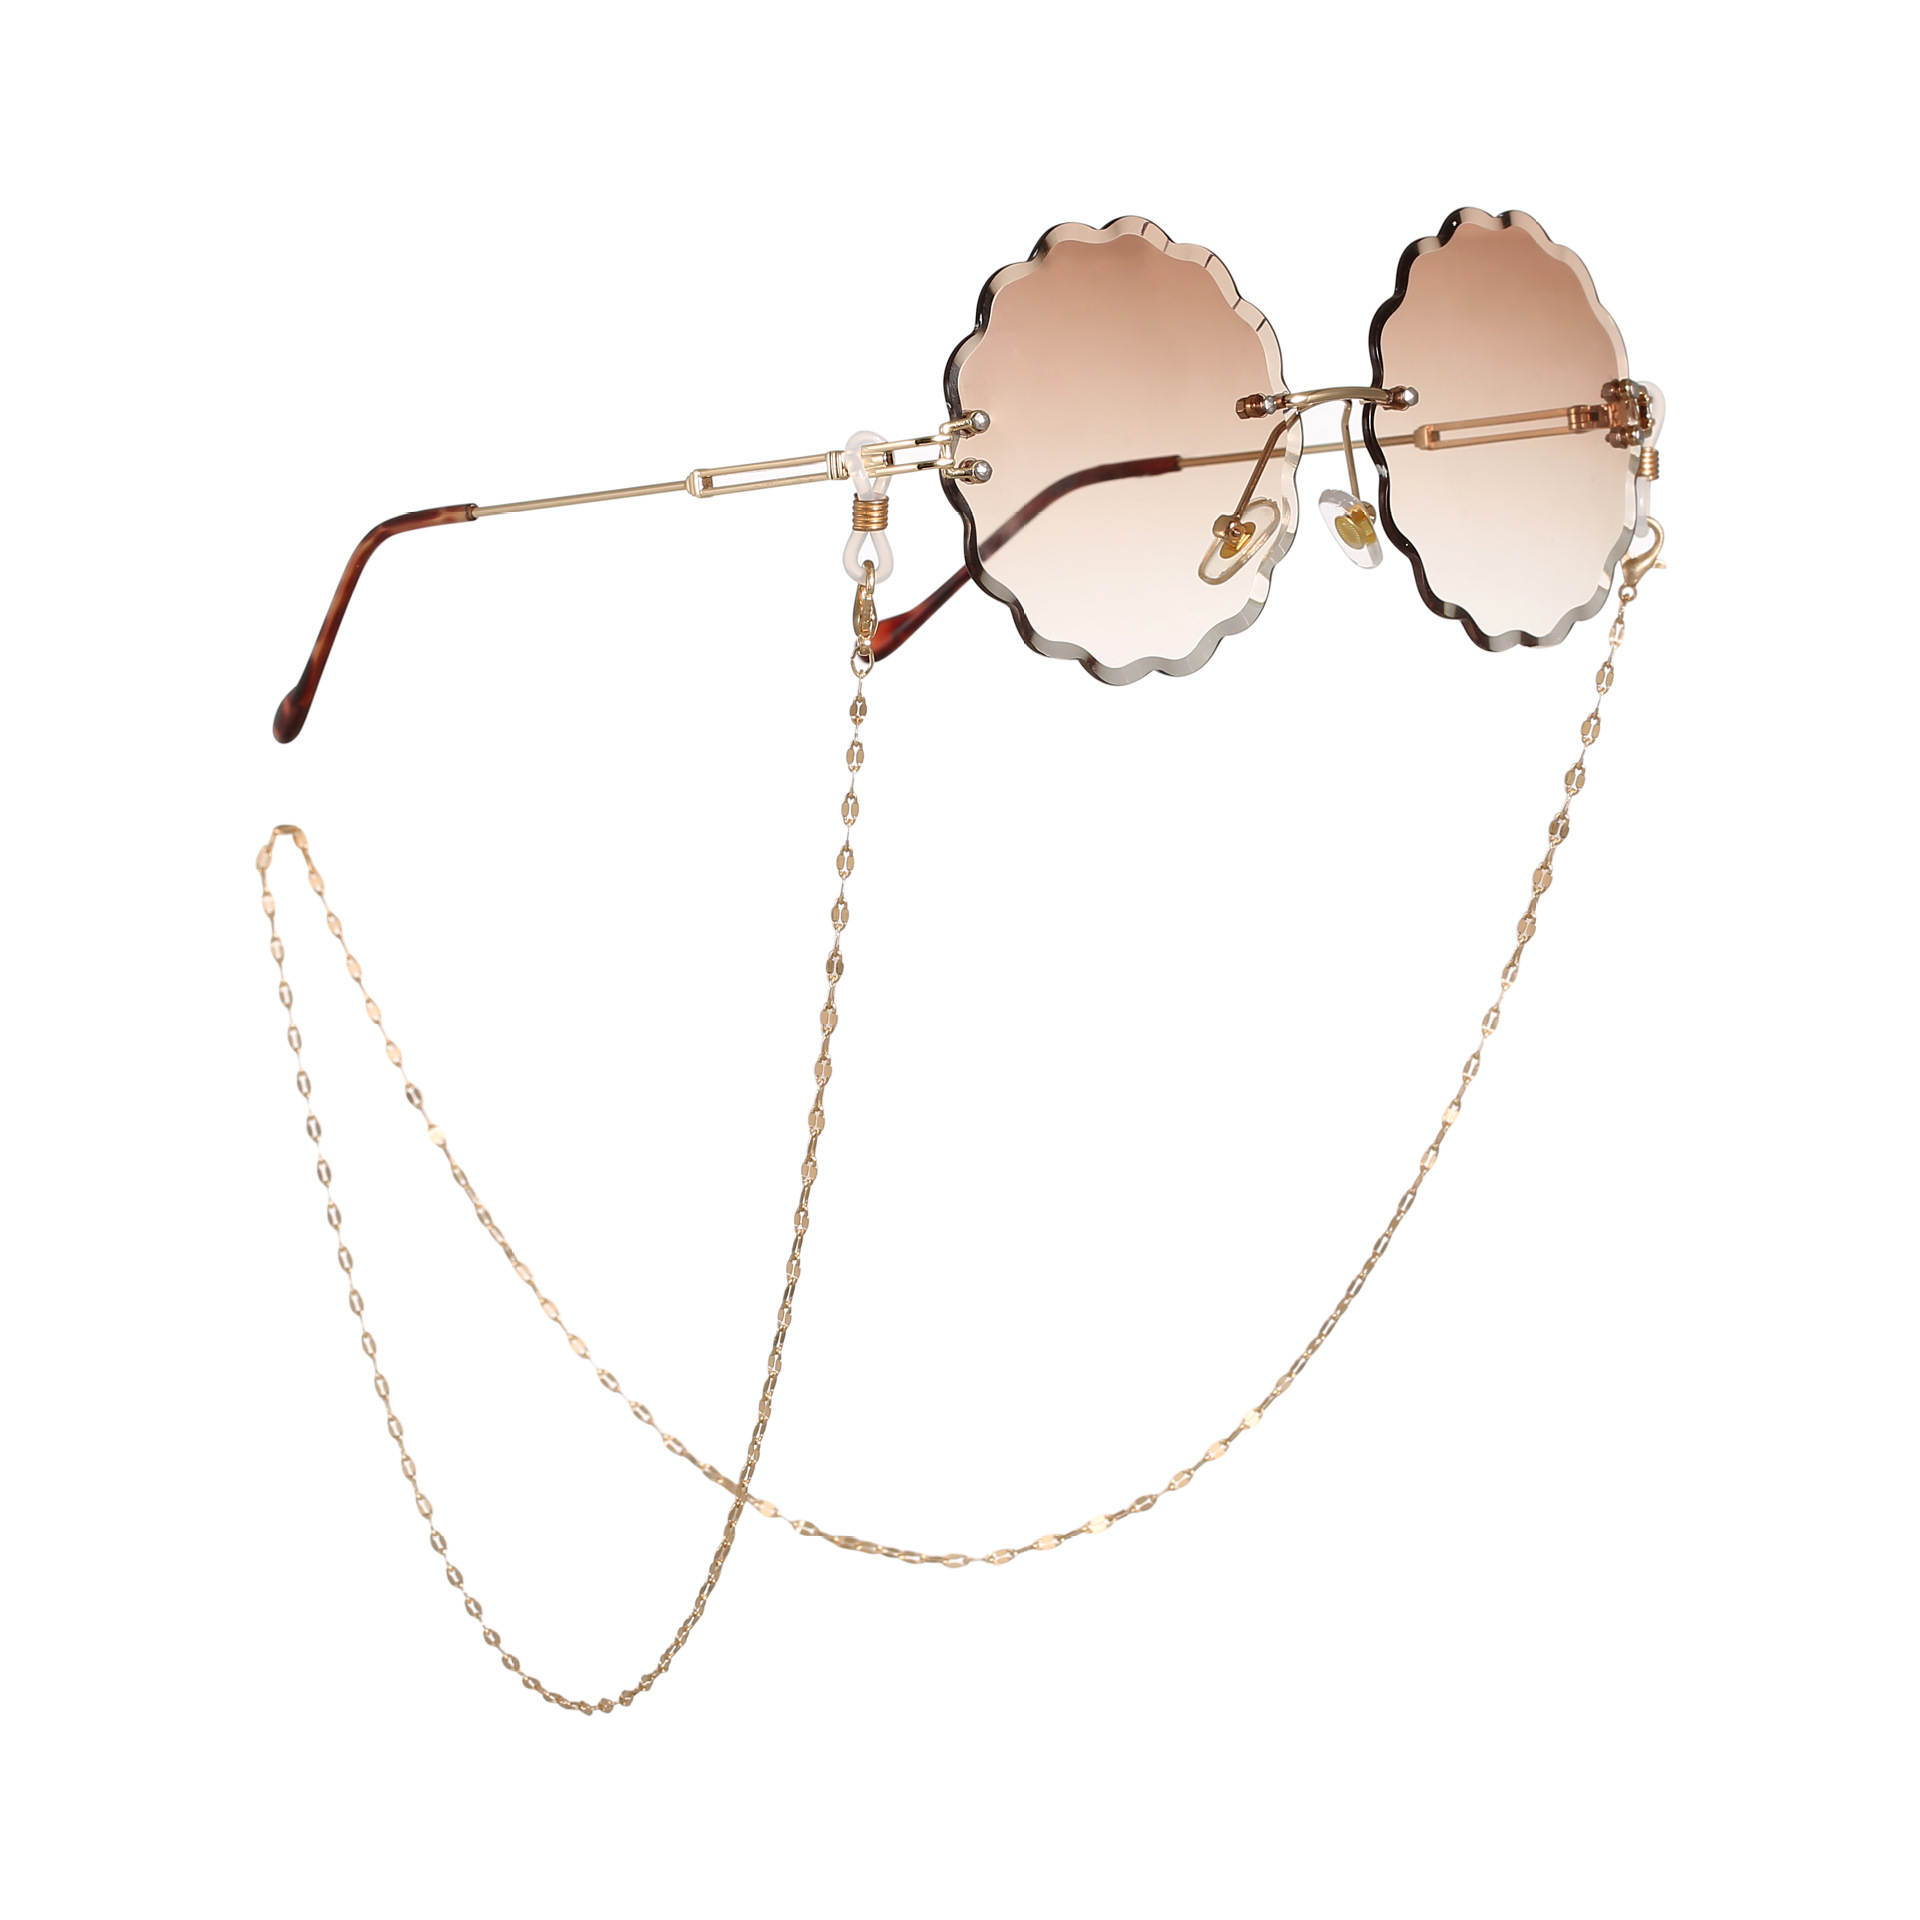 2019 New Fashion  Color Copper Glasses Chain For Women Metal Sunglasses Cords Beaded Eyeglass Glasses Accessories